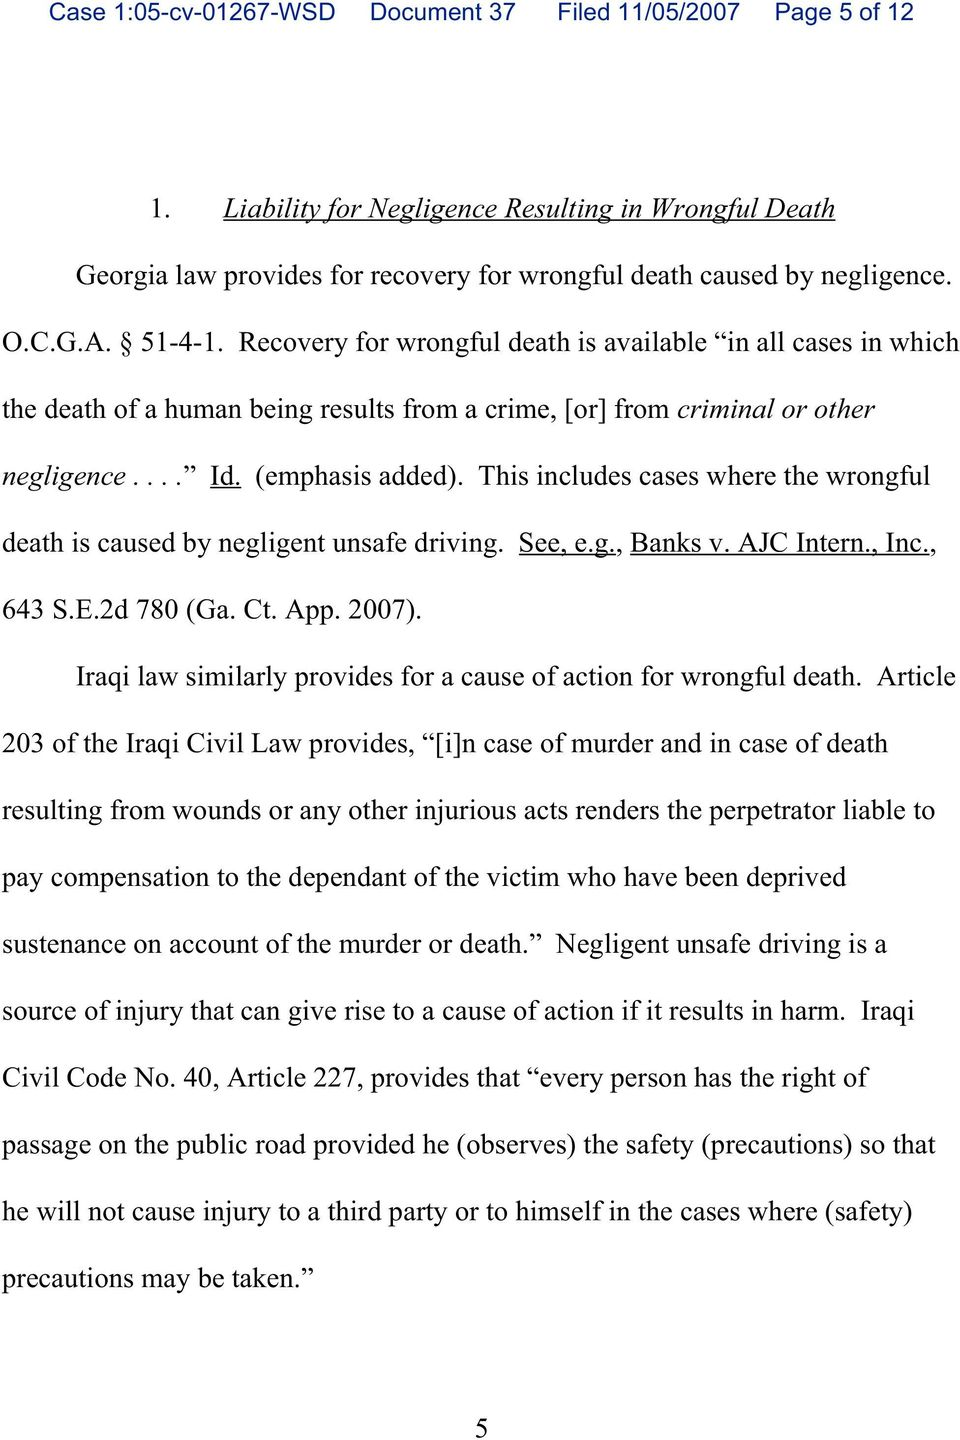 This includes cases where the wrongful death is caused by negligent unsafe driving. See, e.g., Banks v. AJC Intern., Inc., 643 S.E.2d 780 (Ga. Ct. App. 2007).